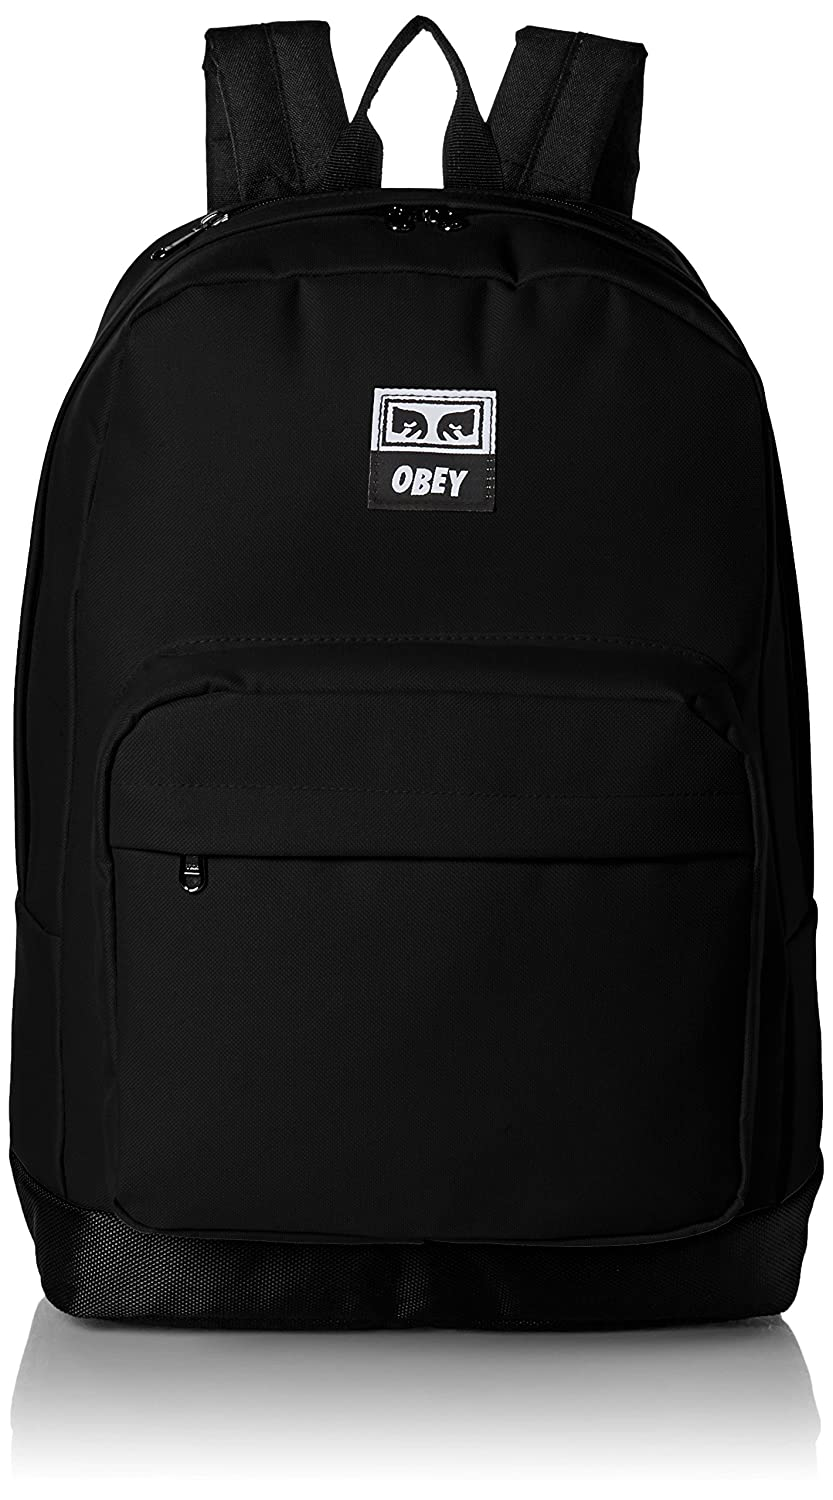 Obey Men's Dropout Juvee Backpack Black ONE Size 100010096